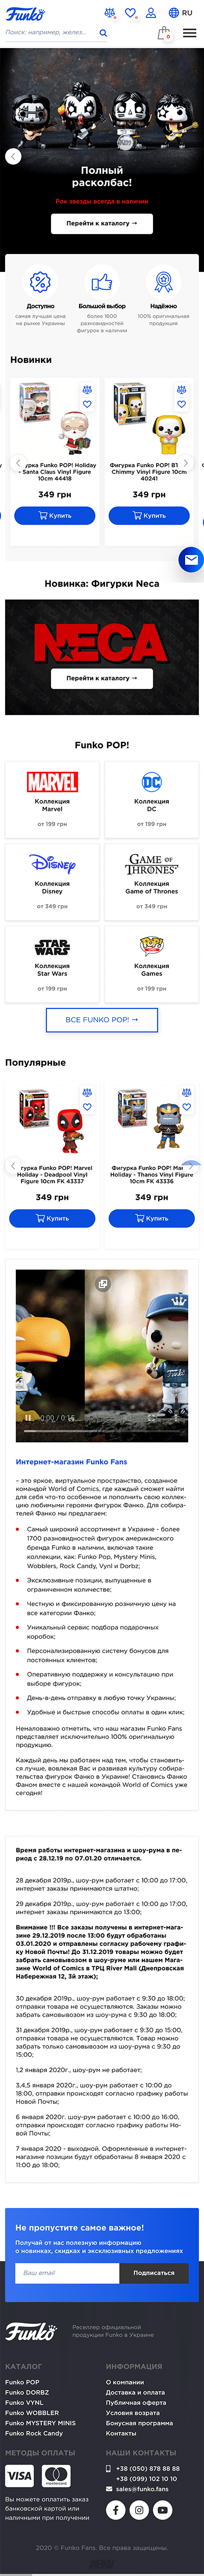 Funko Fans phone view